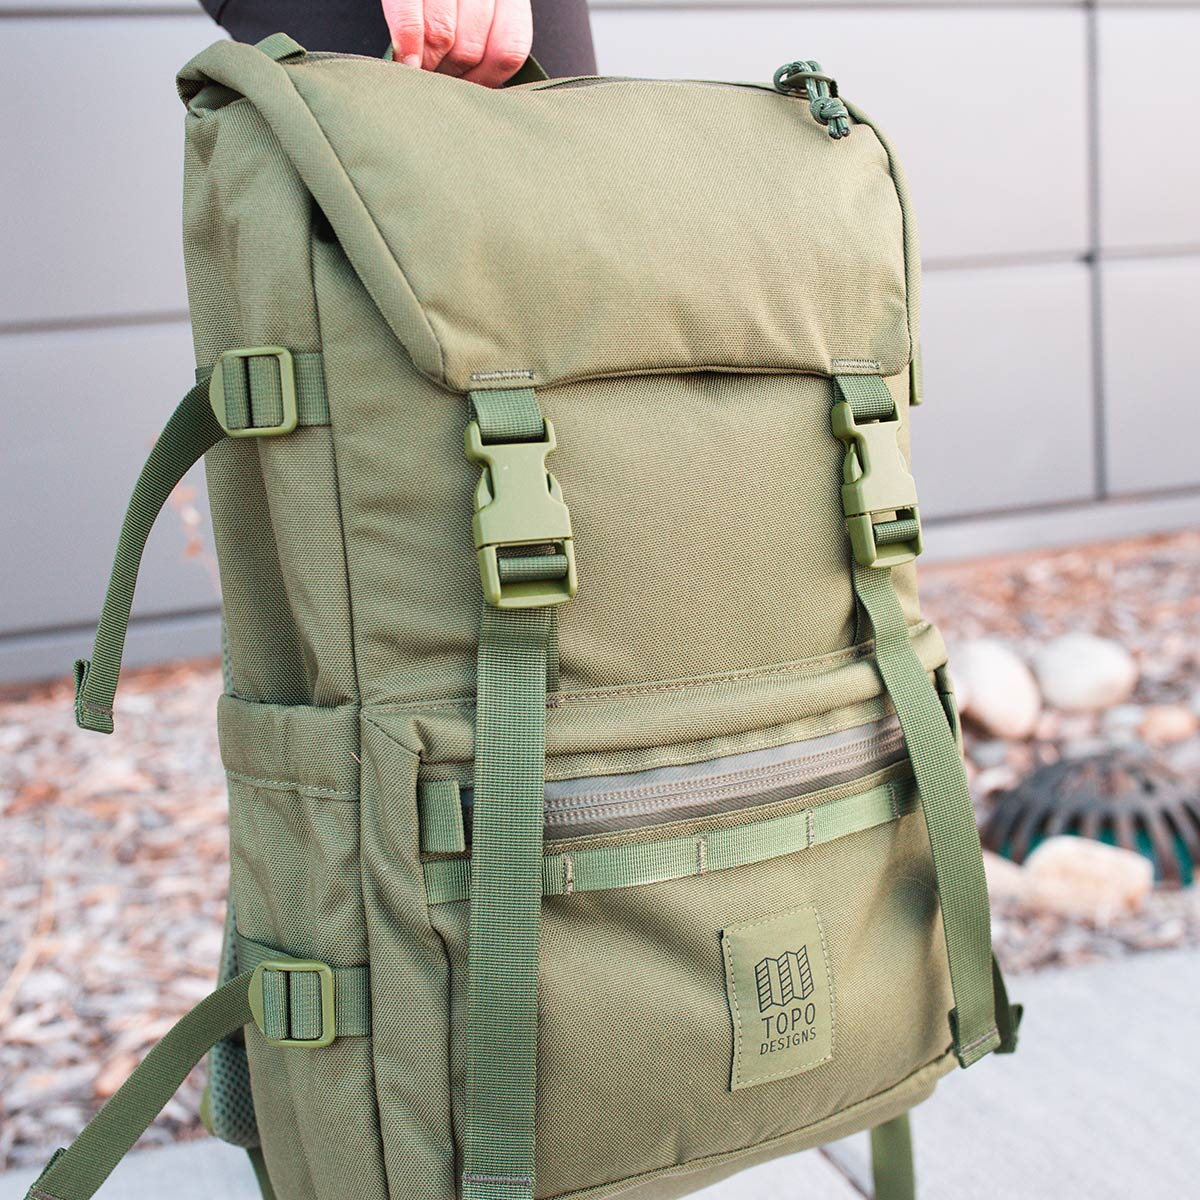 Topo Designs Rover Pack Tech Olive, zeitloses Styling und robuster Rucksack